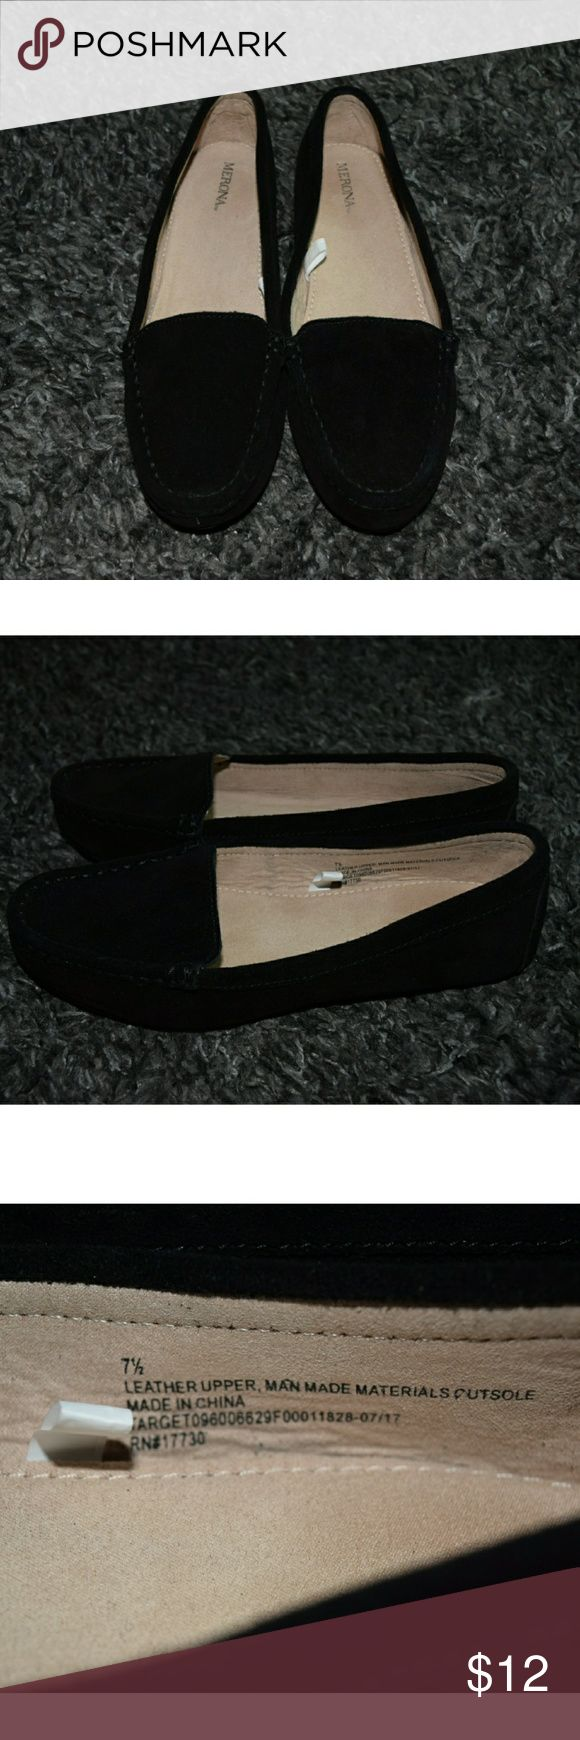 Black Leather Loafer NWOT - never worn. Leather upper. Perfect for the office or a night out. Merona Shoes Flats & Loafers